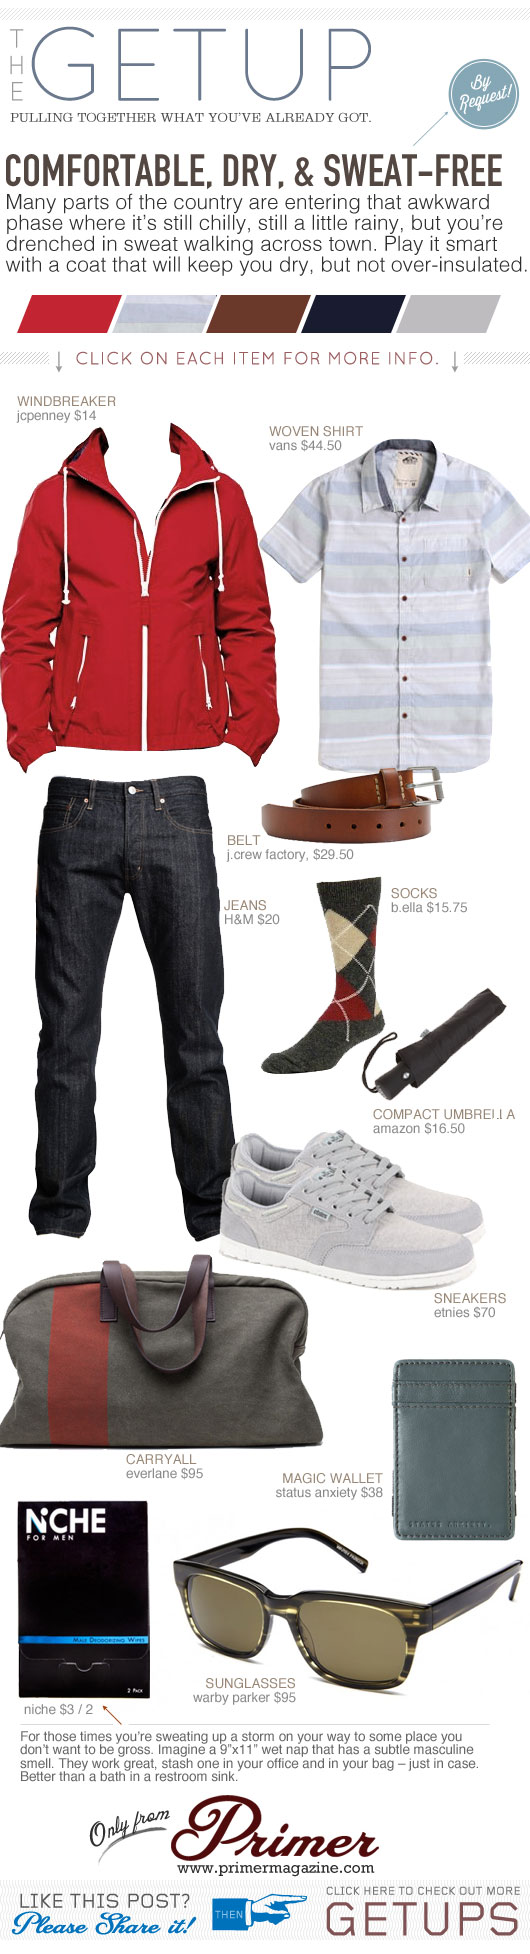 Getup - Comfortable, dry, and sweat-free - red jacket, button up shirt, blue jeans, gray sneakers